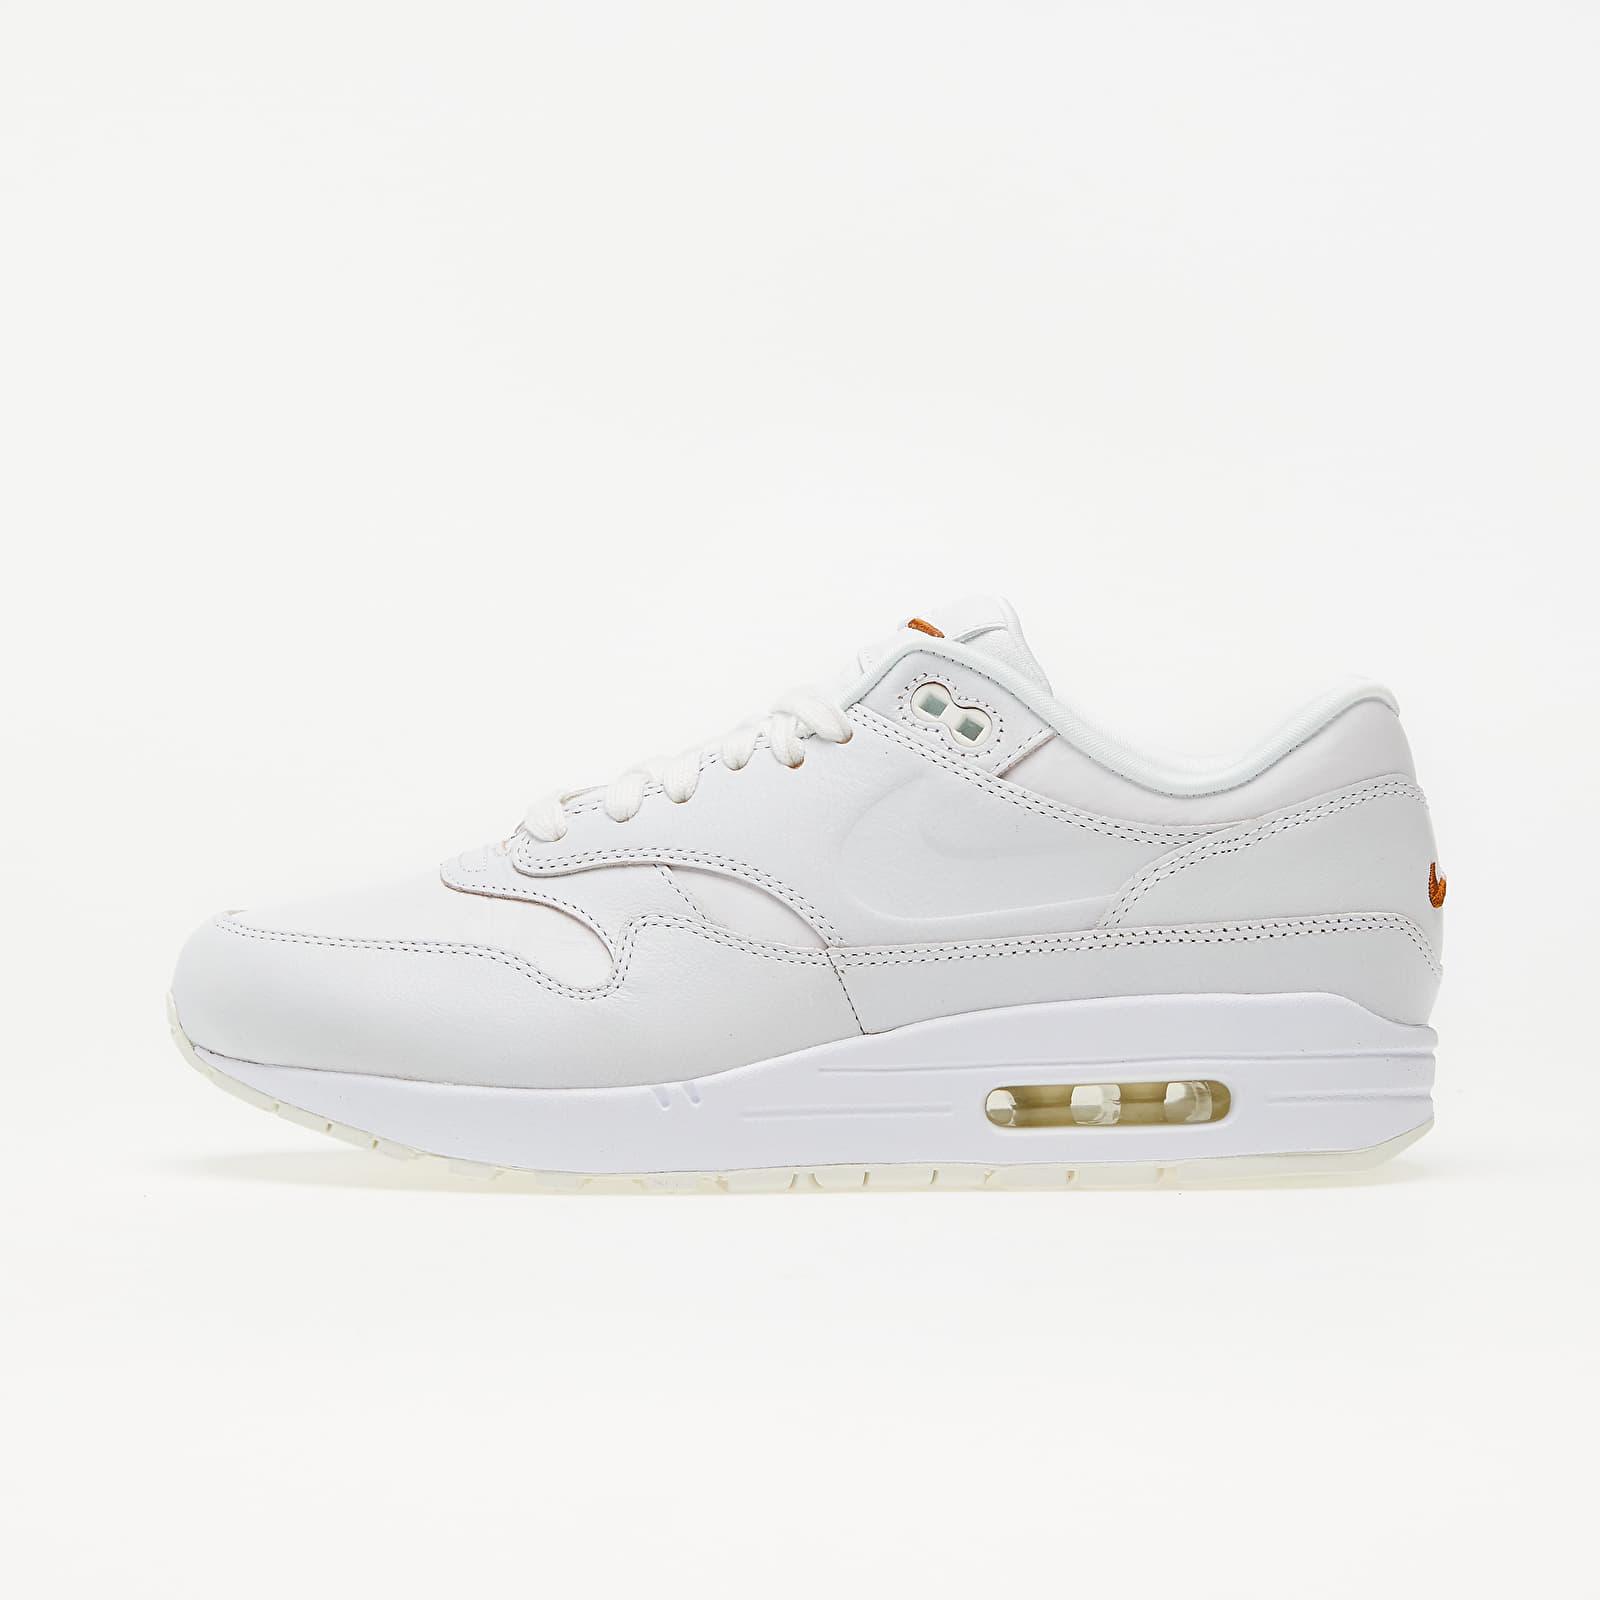 Women's shoes Nike Wmns Air Max 1 Summit White/ Summit White-Sail-Tawny